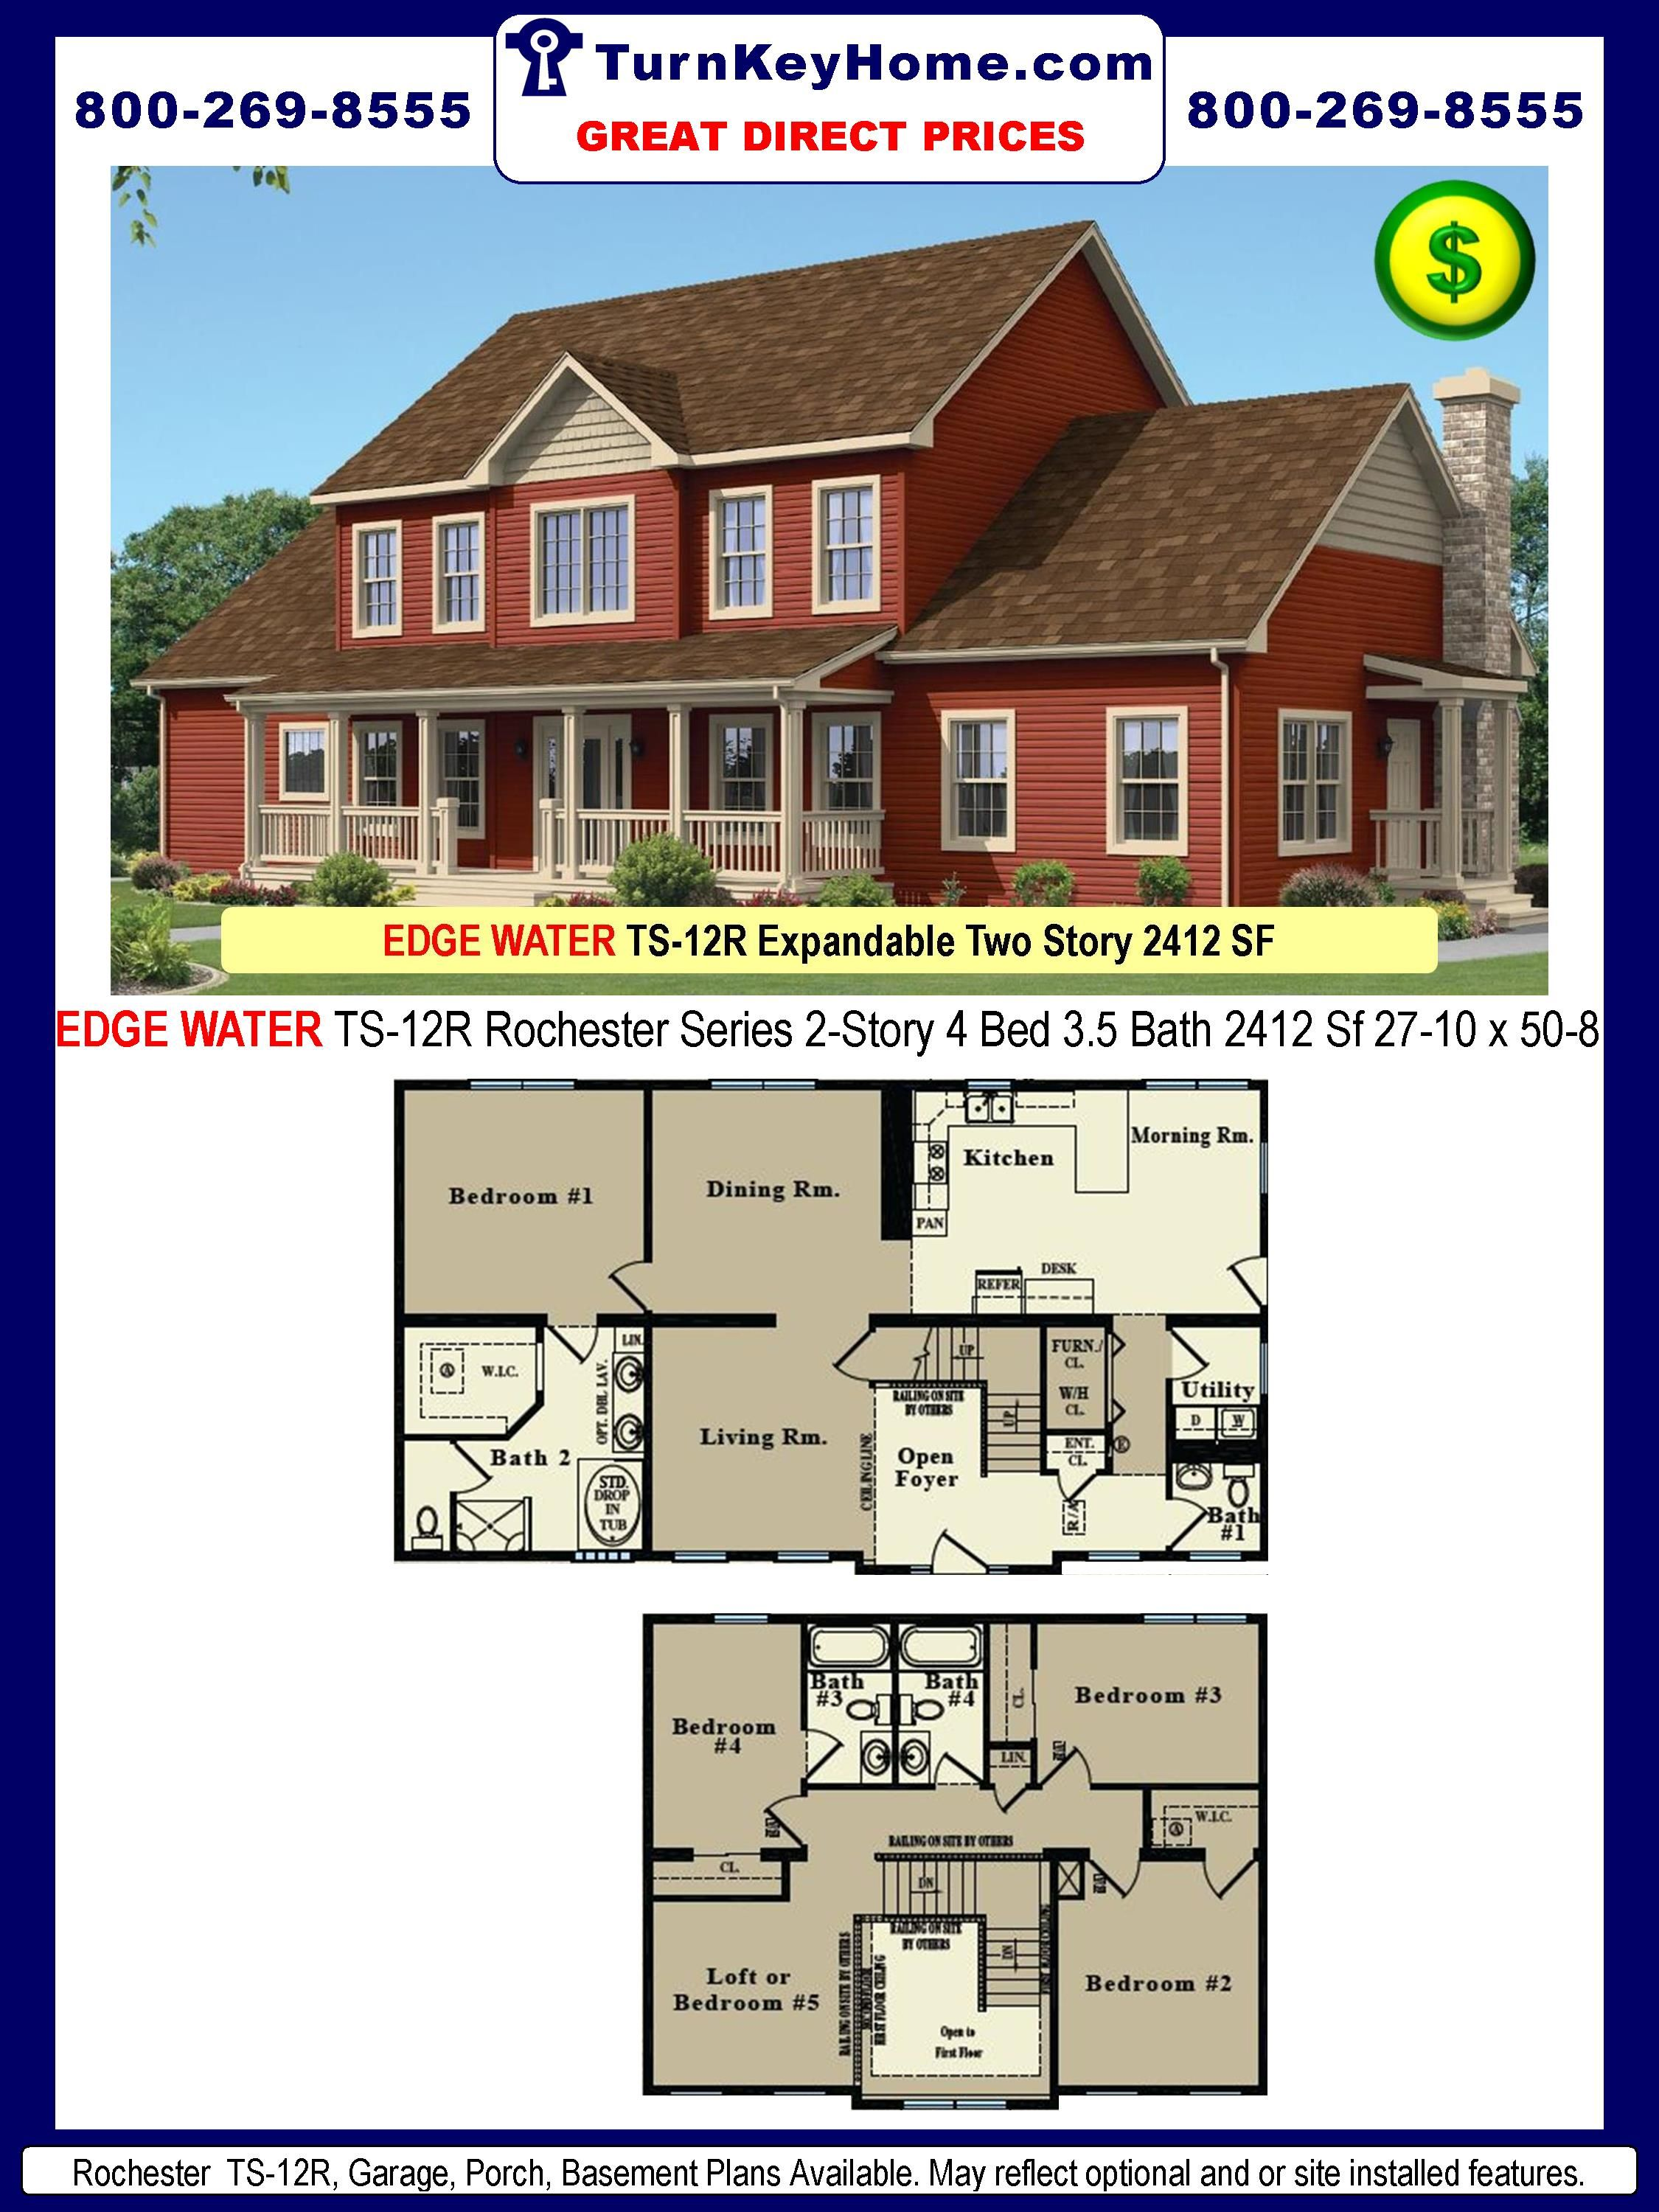 4 Bedroom Two Story Modular Home Floor Plans